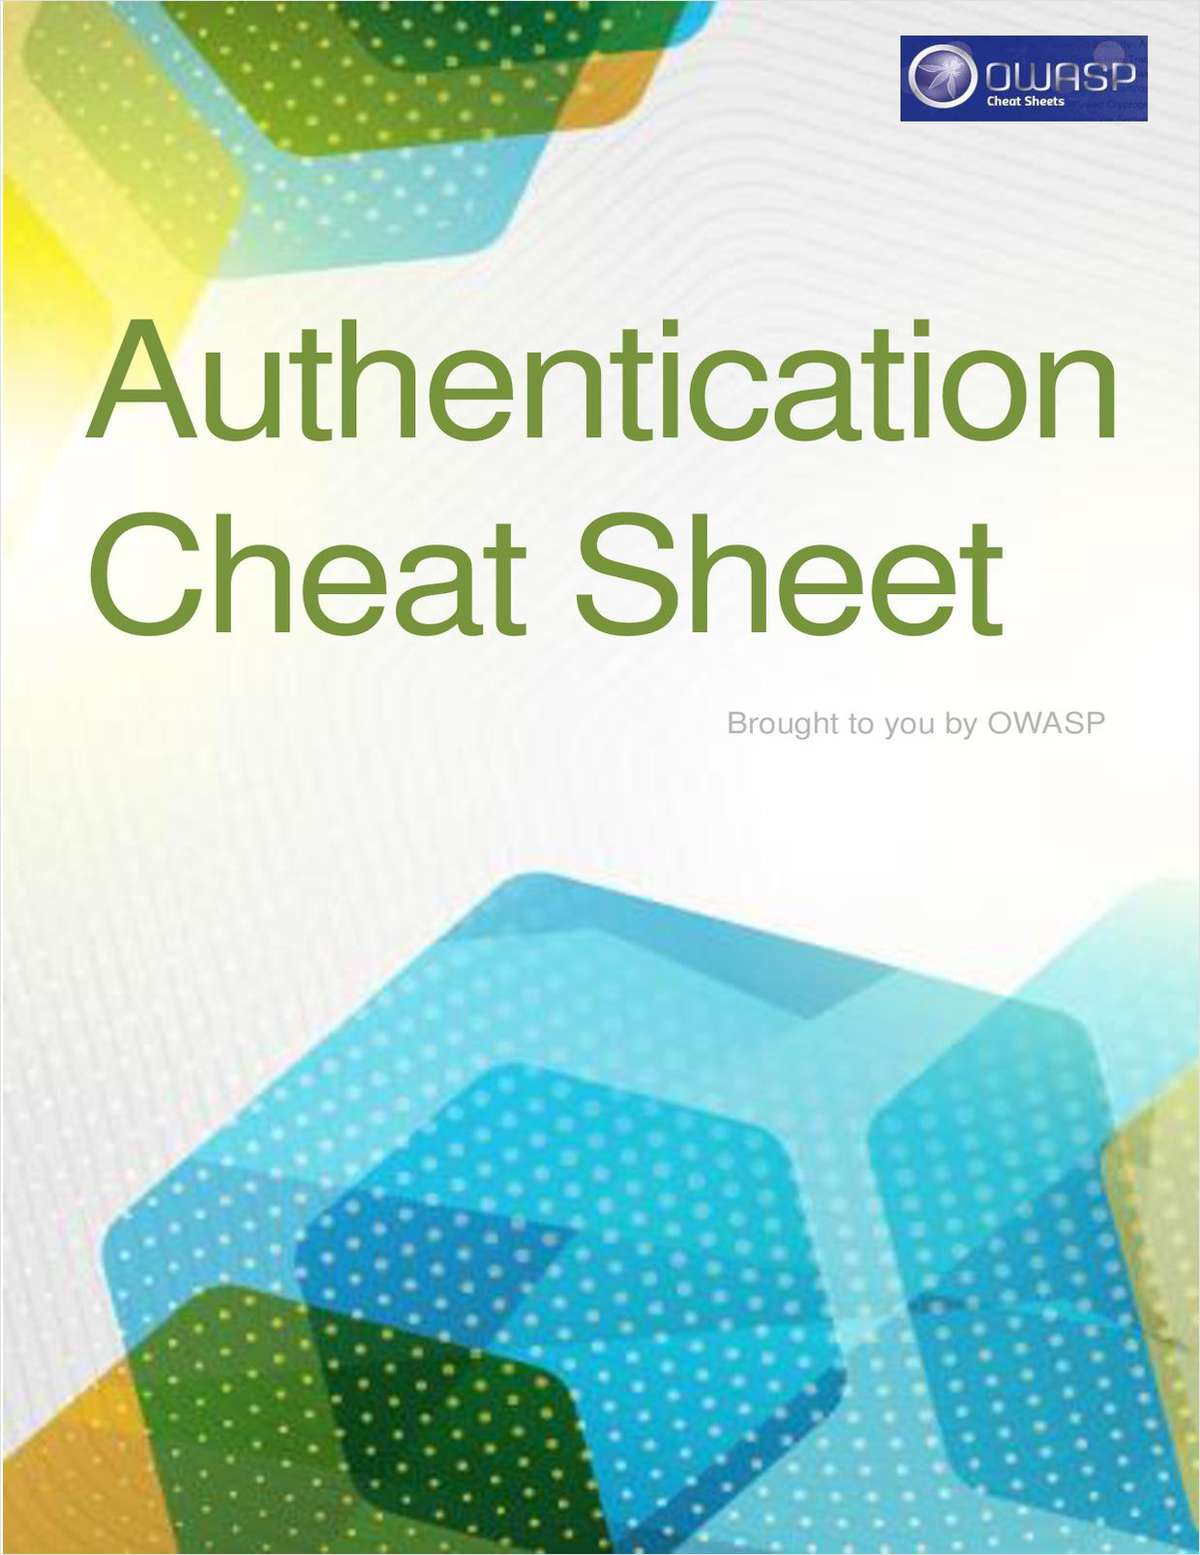 Authentication Cheat Sheet